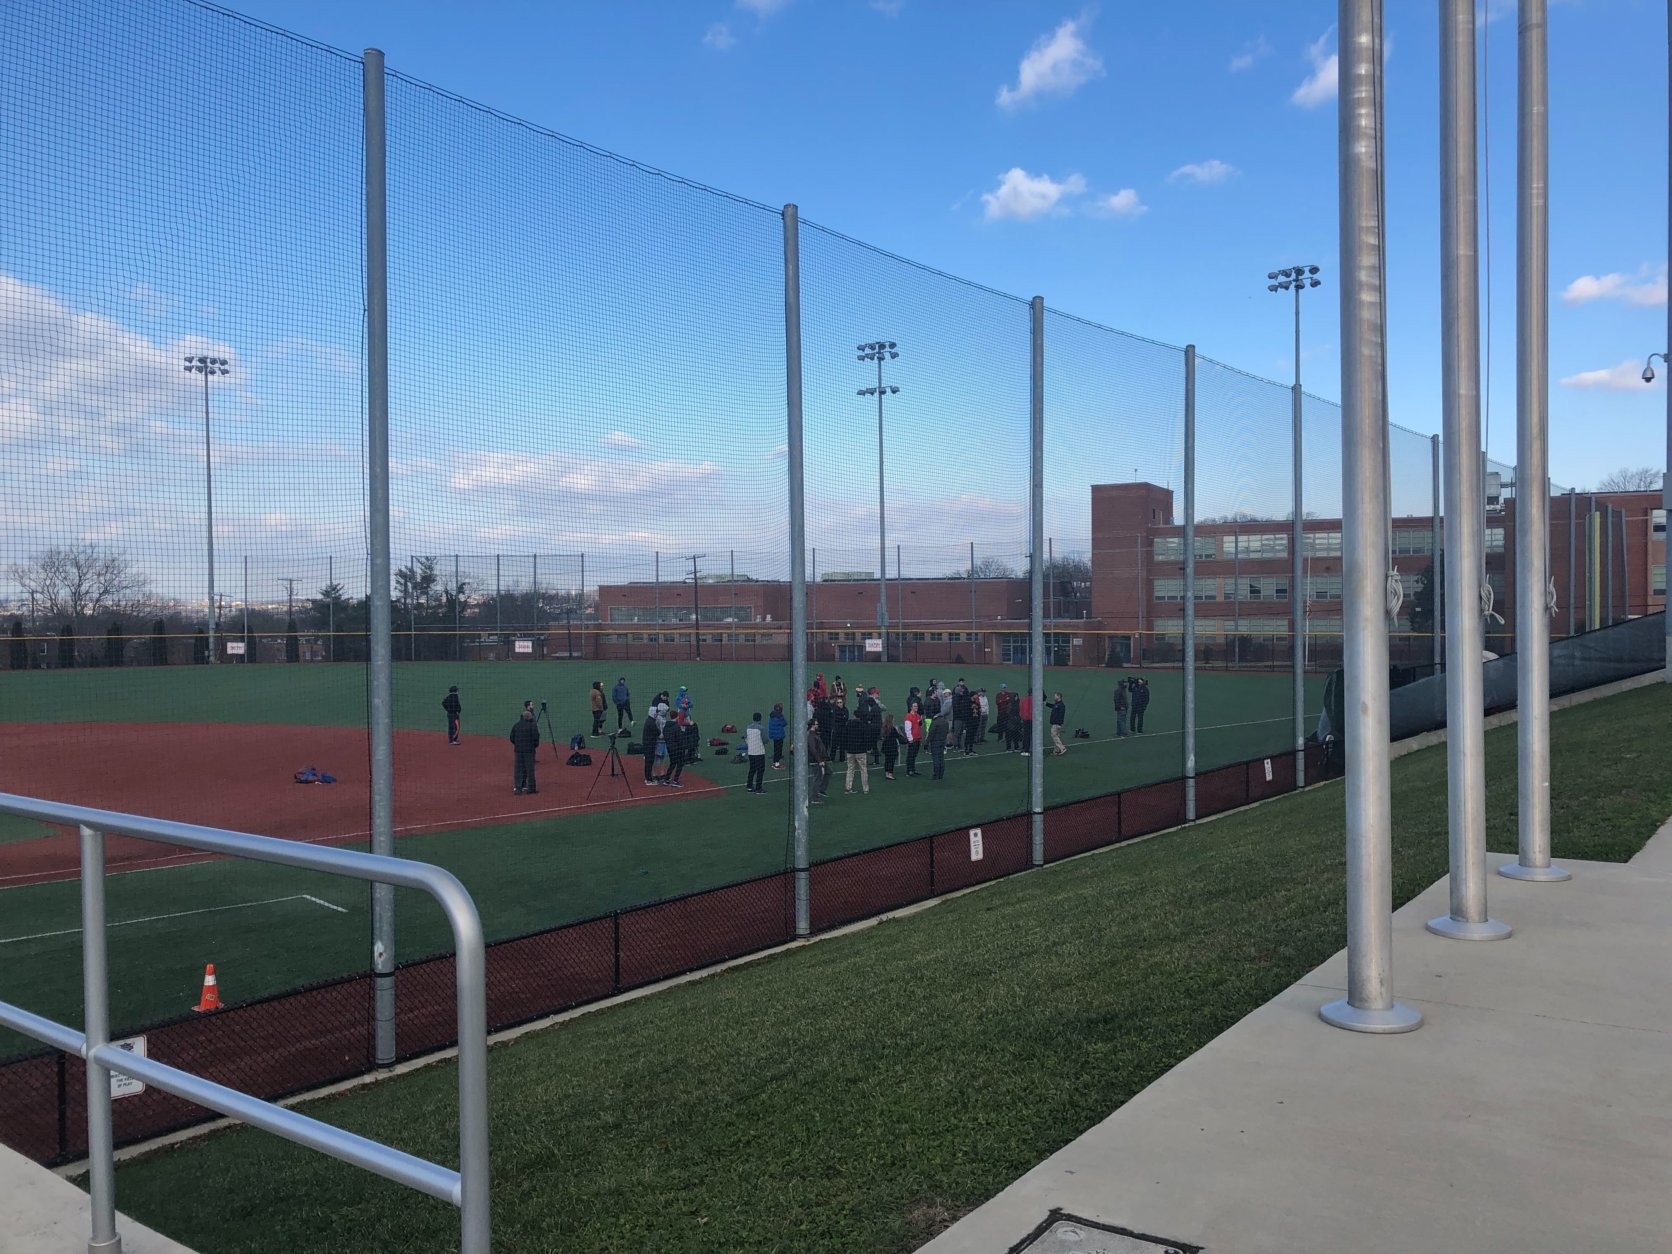 Washington Nationals Youth Baseball Academy in Southeast, D.C.